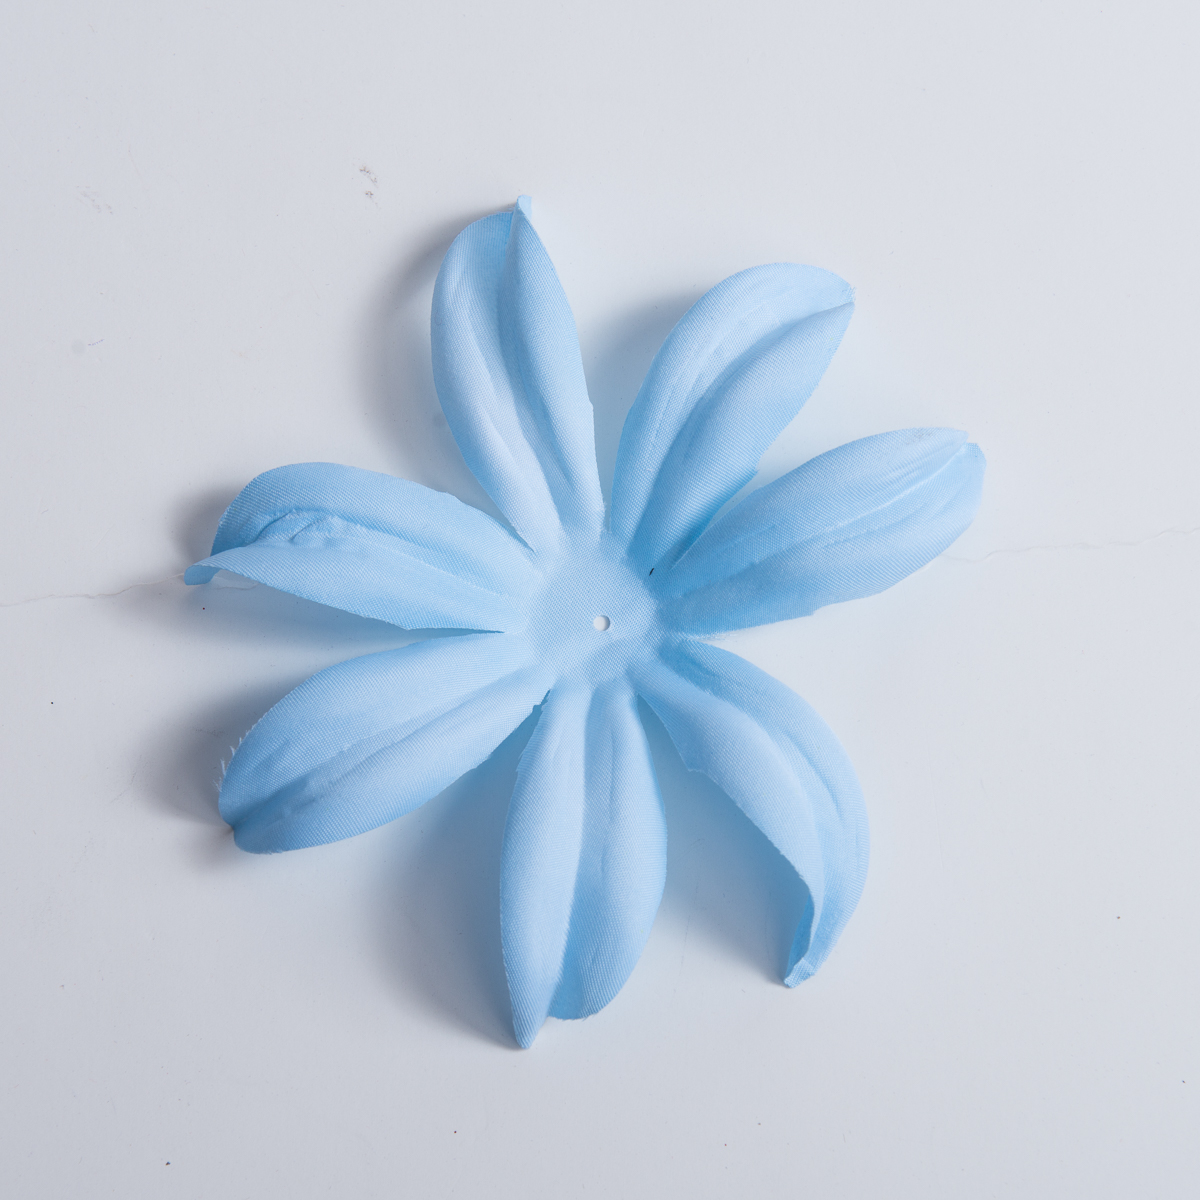 Ice blue satin lily flower petals 5pc 802013 05 23 sun yorkos zoria ice blue satin lily flower petals 5pc izmirmasajfo